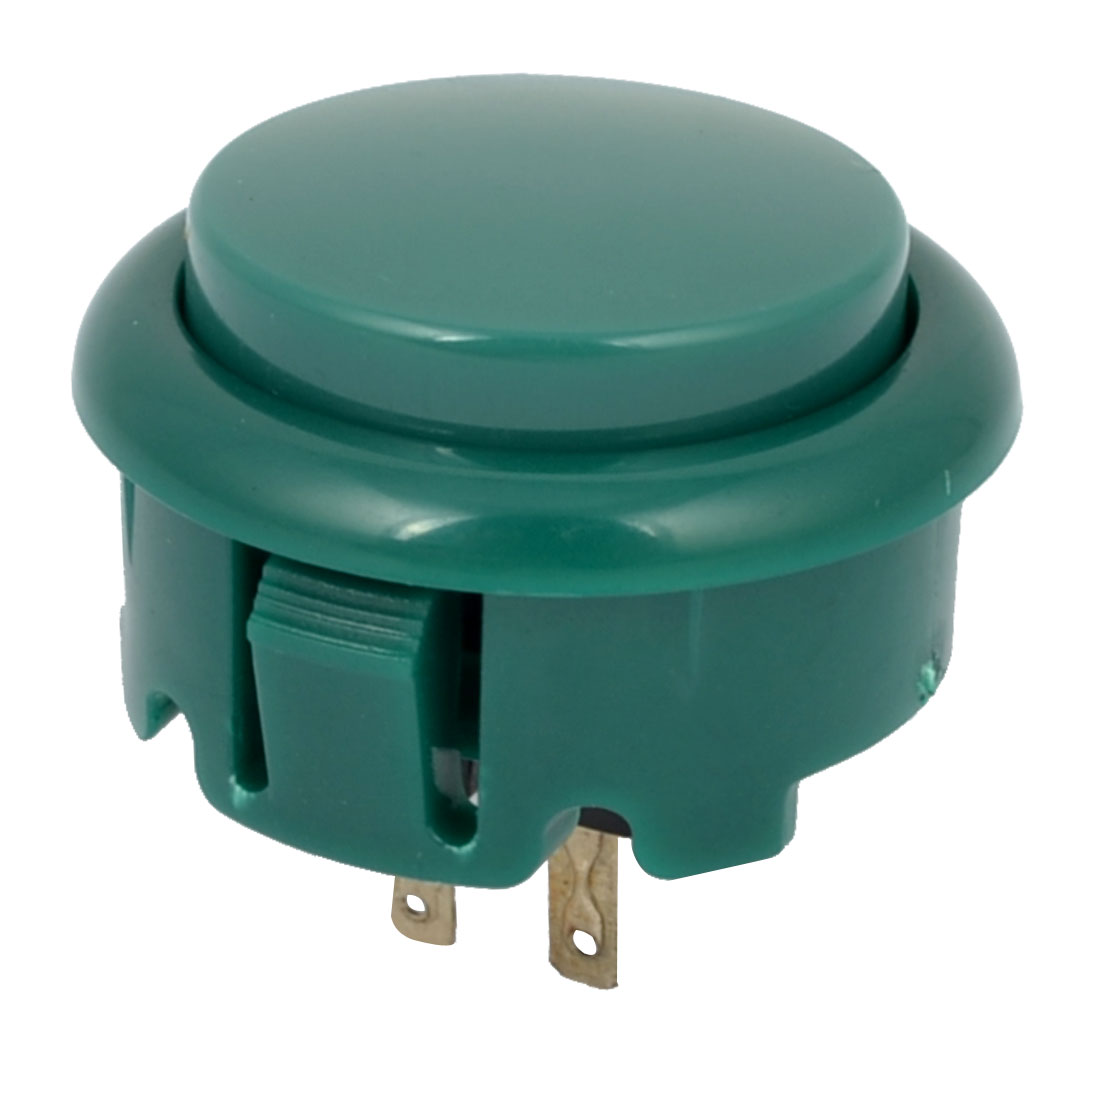 Arcade Games Momentary Push Button 20mm Dia Green AC 250V 1.5A